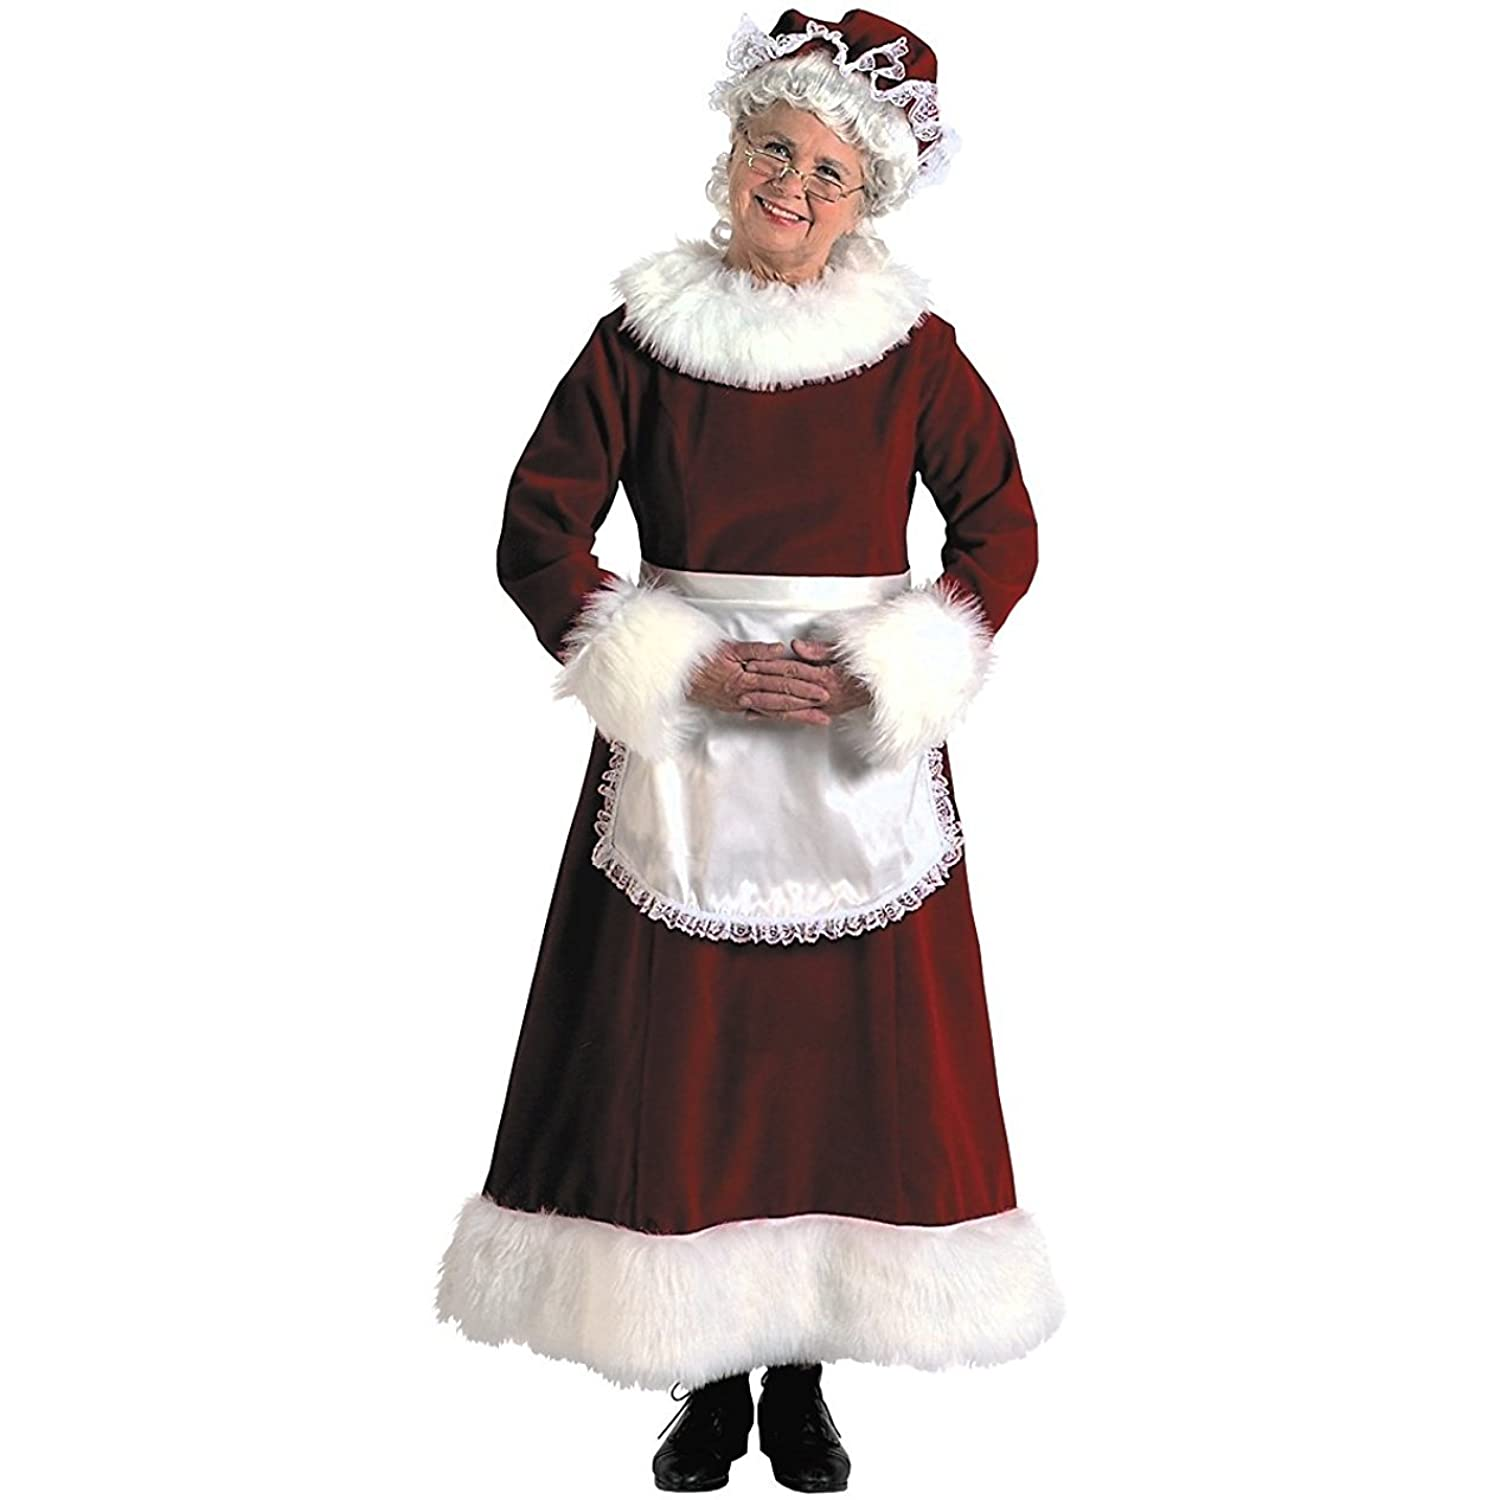 Adult Mrs. Santa Claus Red Velvet Costume Dress Set - DeluxeAdultCostumes.com